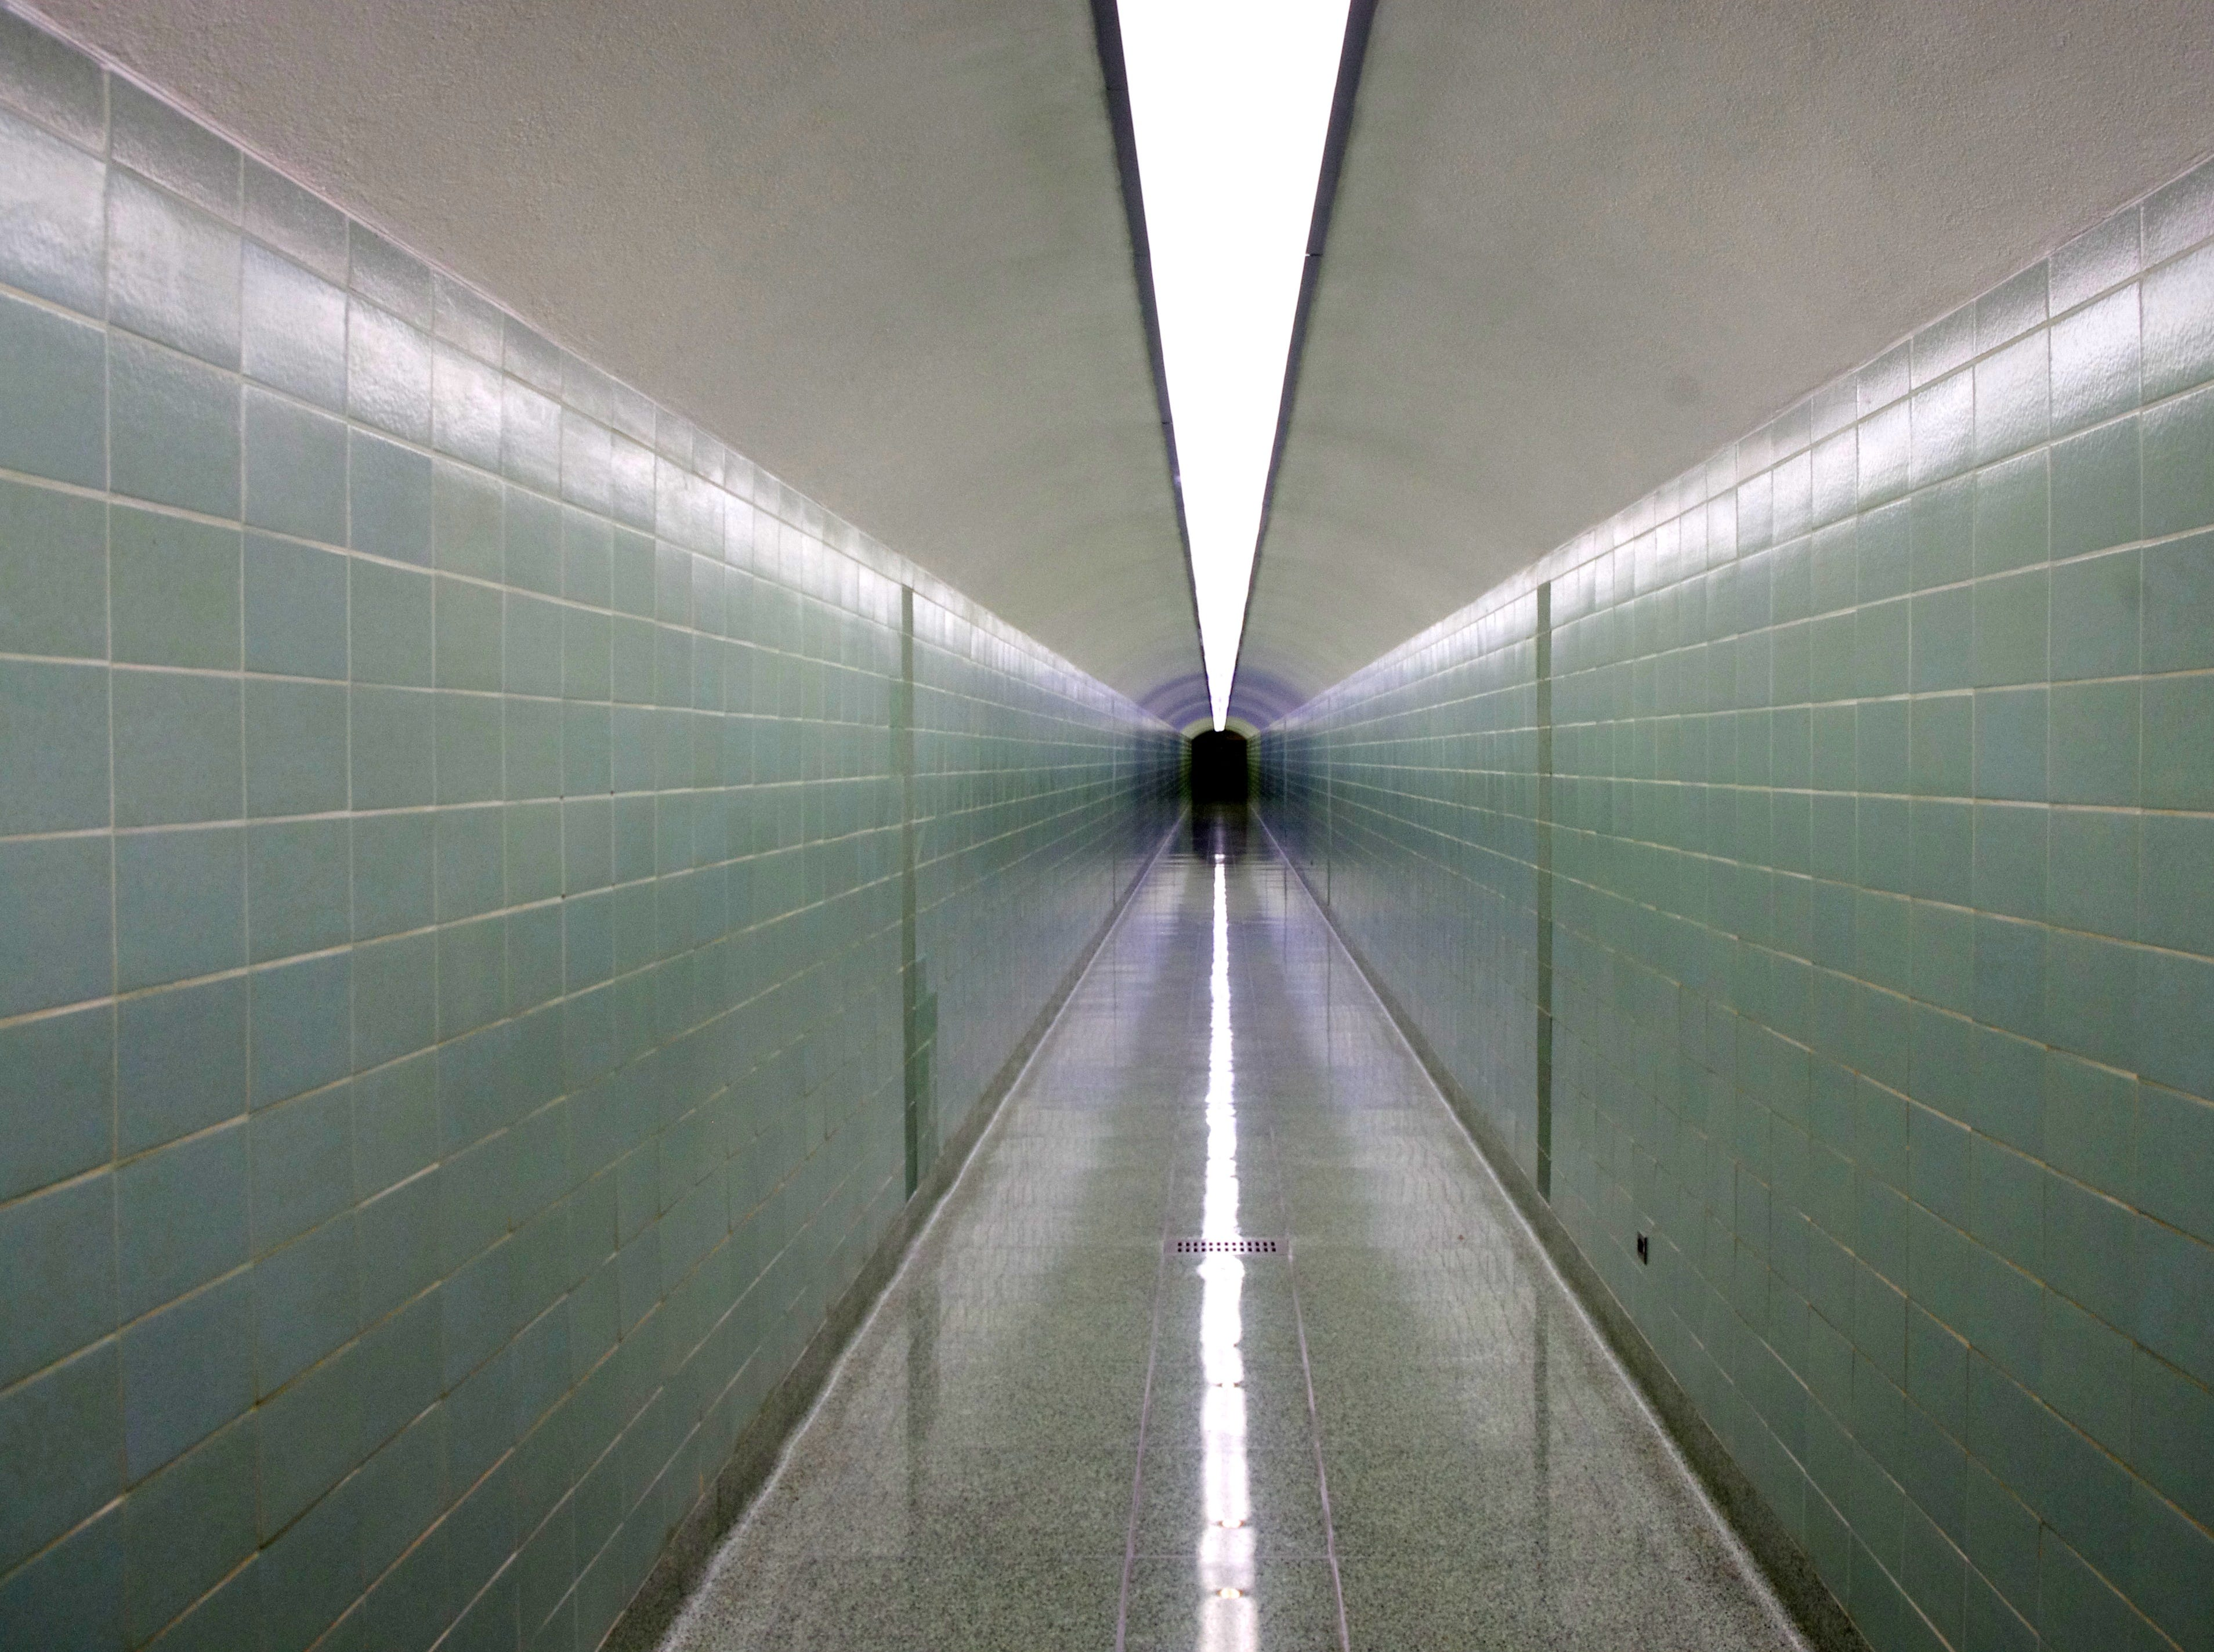 The hallways inside Shasta Dam are mostly empty of tourists going through tours of the dam. The U.S. Bureau of Reclamation, which operates the dam, has suspended tours while the elevators in the dam are refurbished.